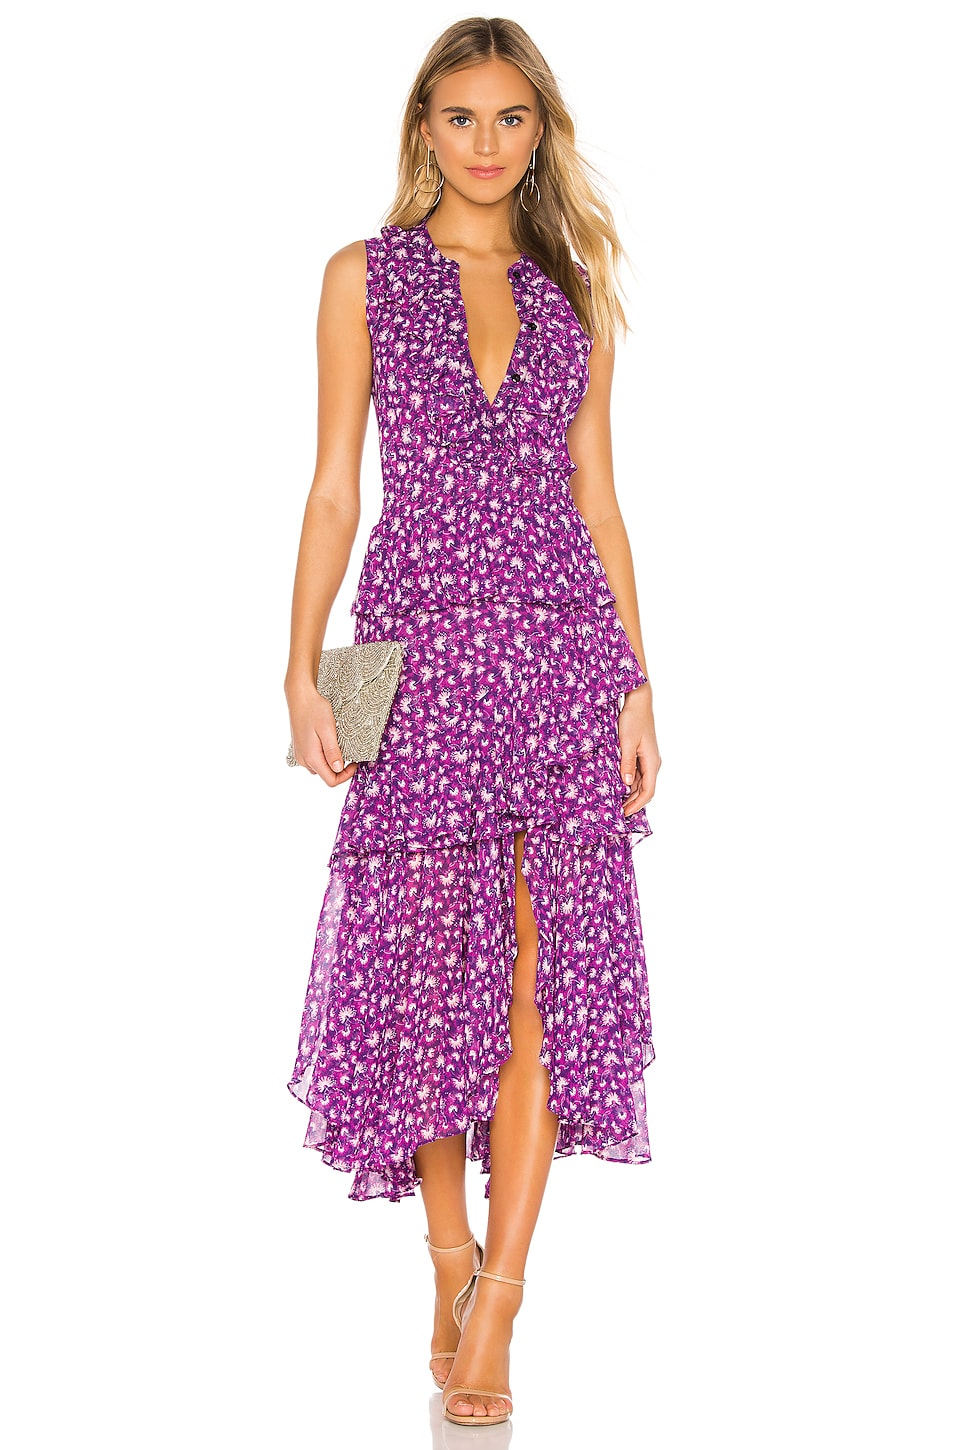 MISA Los Angeles Ilona Dress in Purple Floral